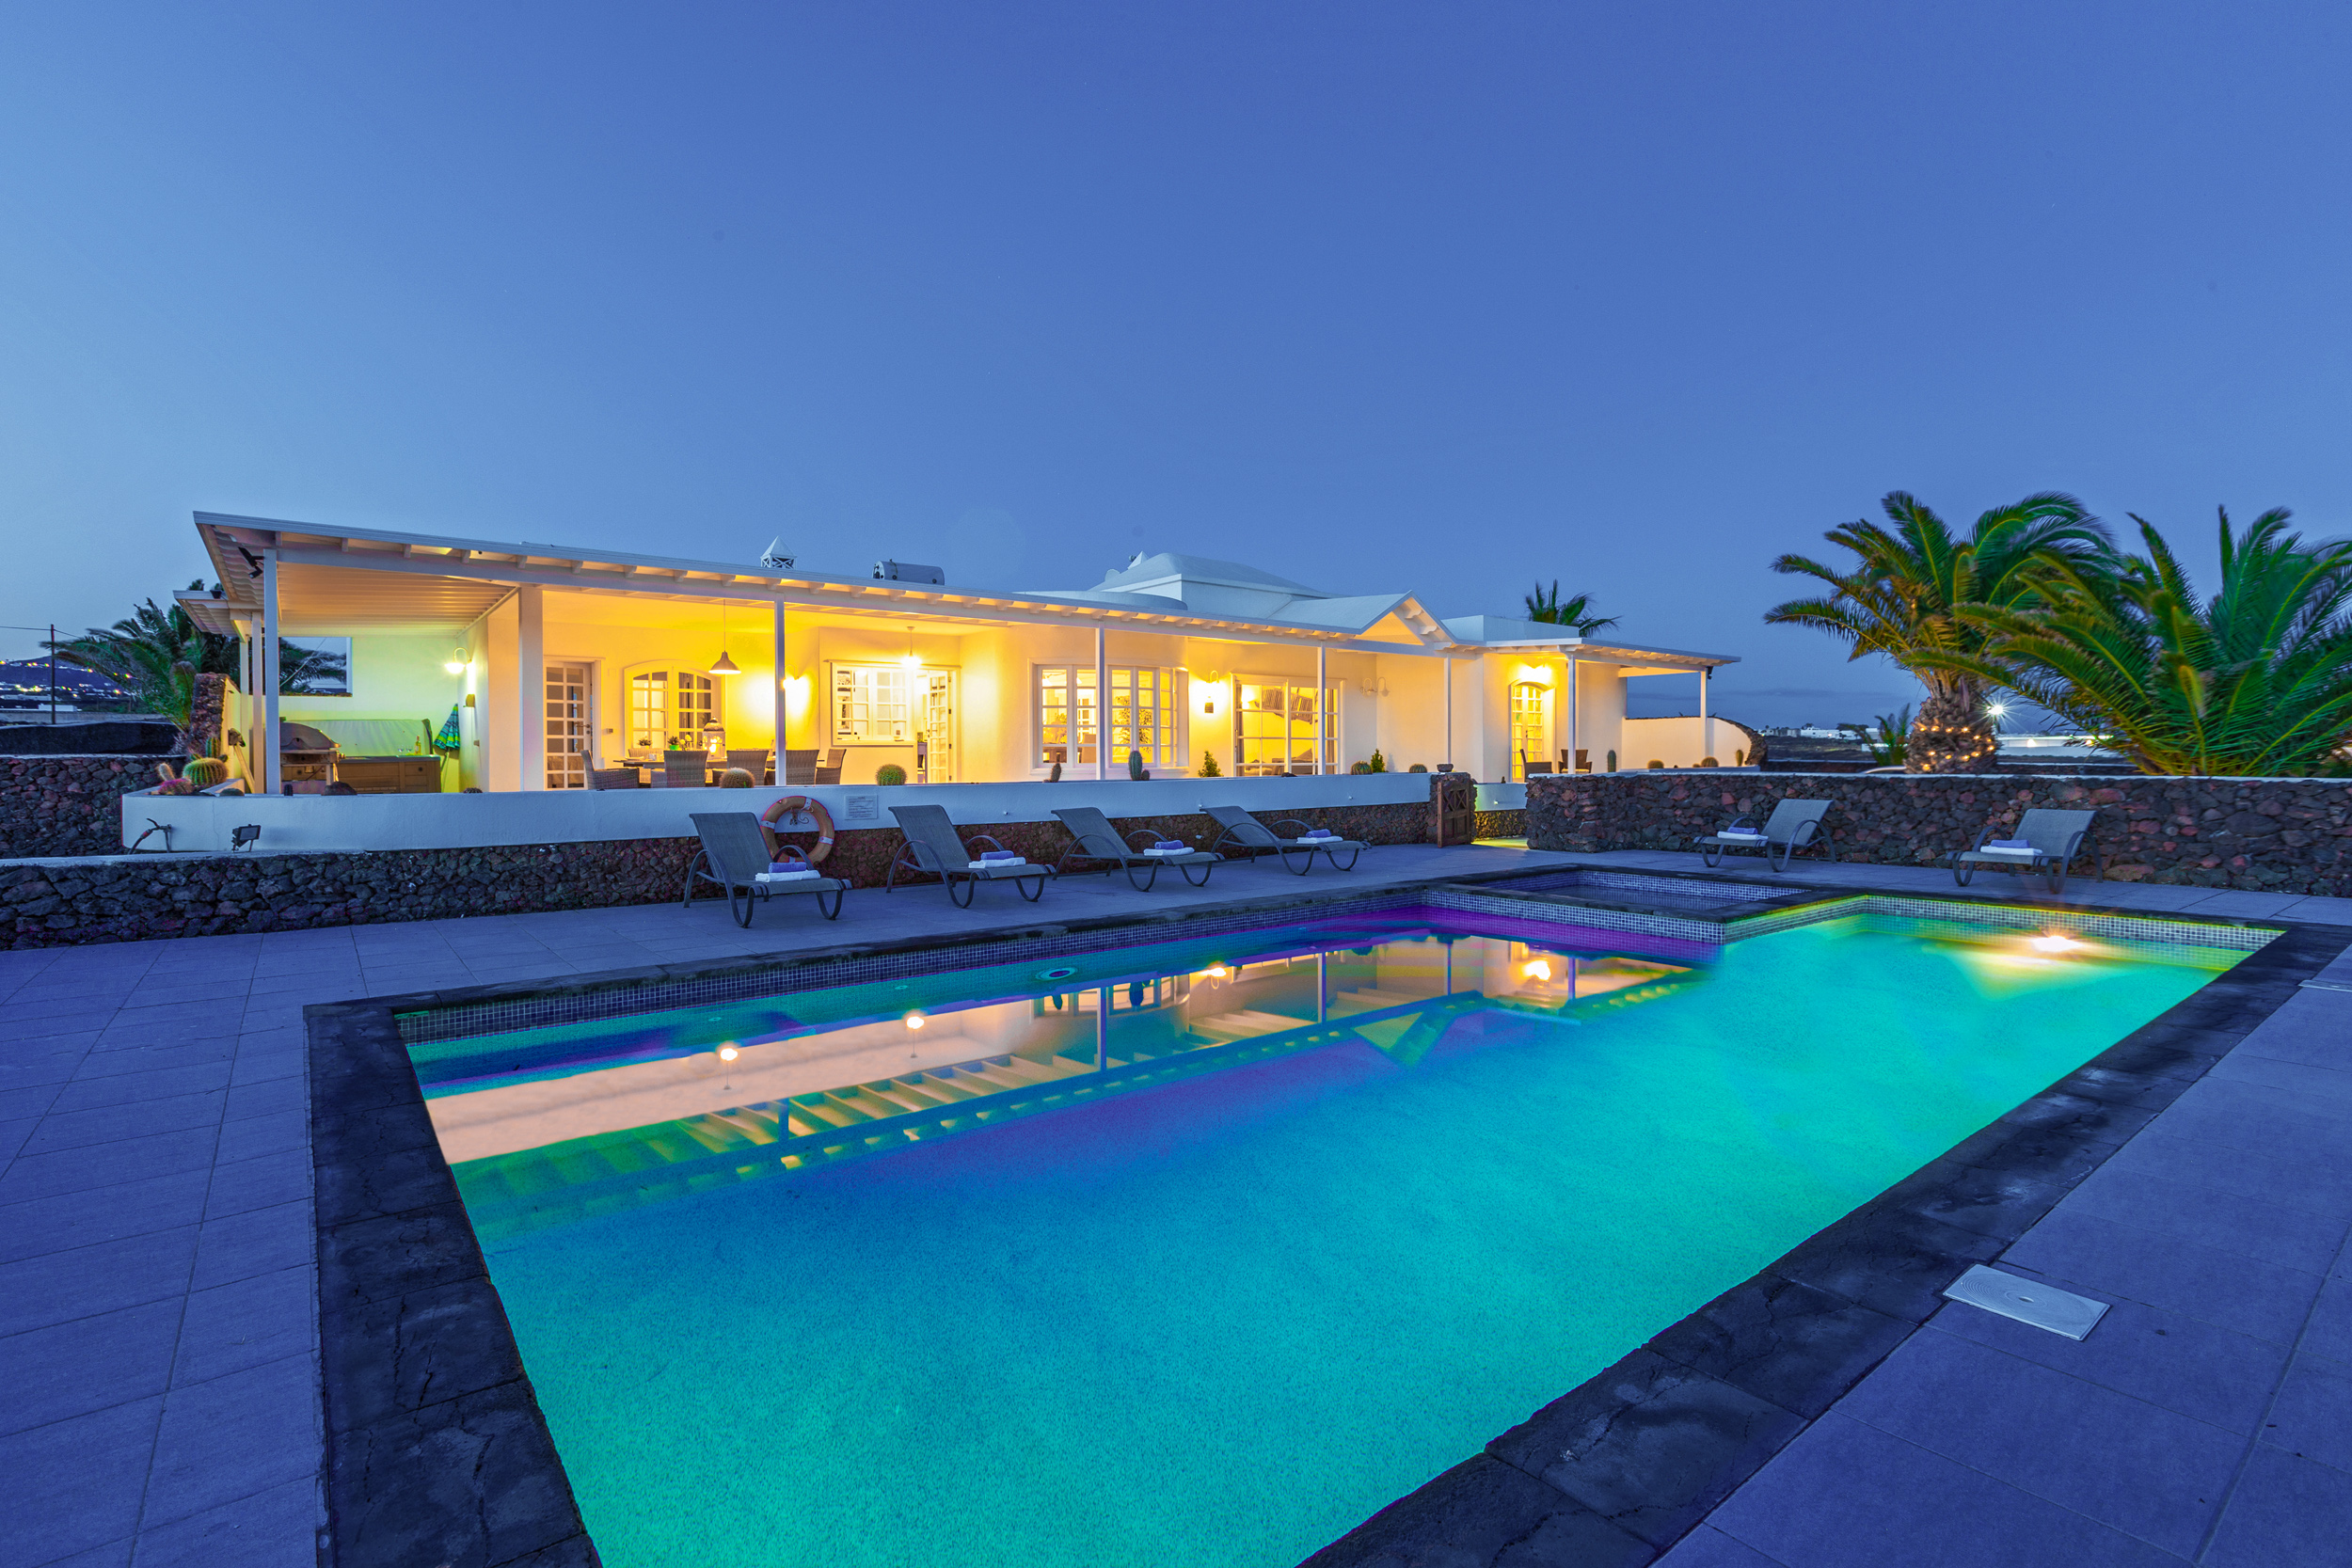 LVC198416 Villa and pool by night